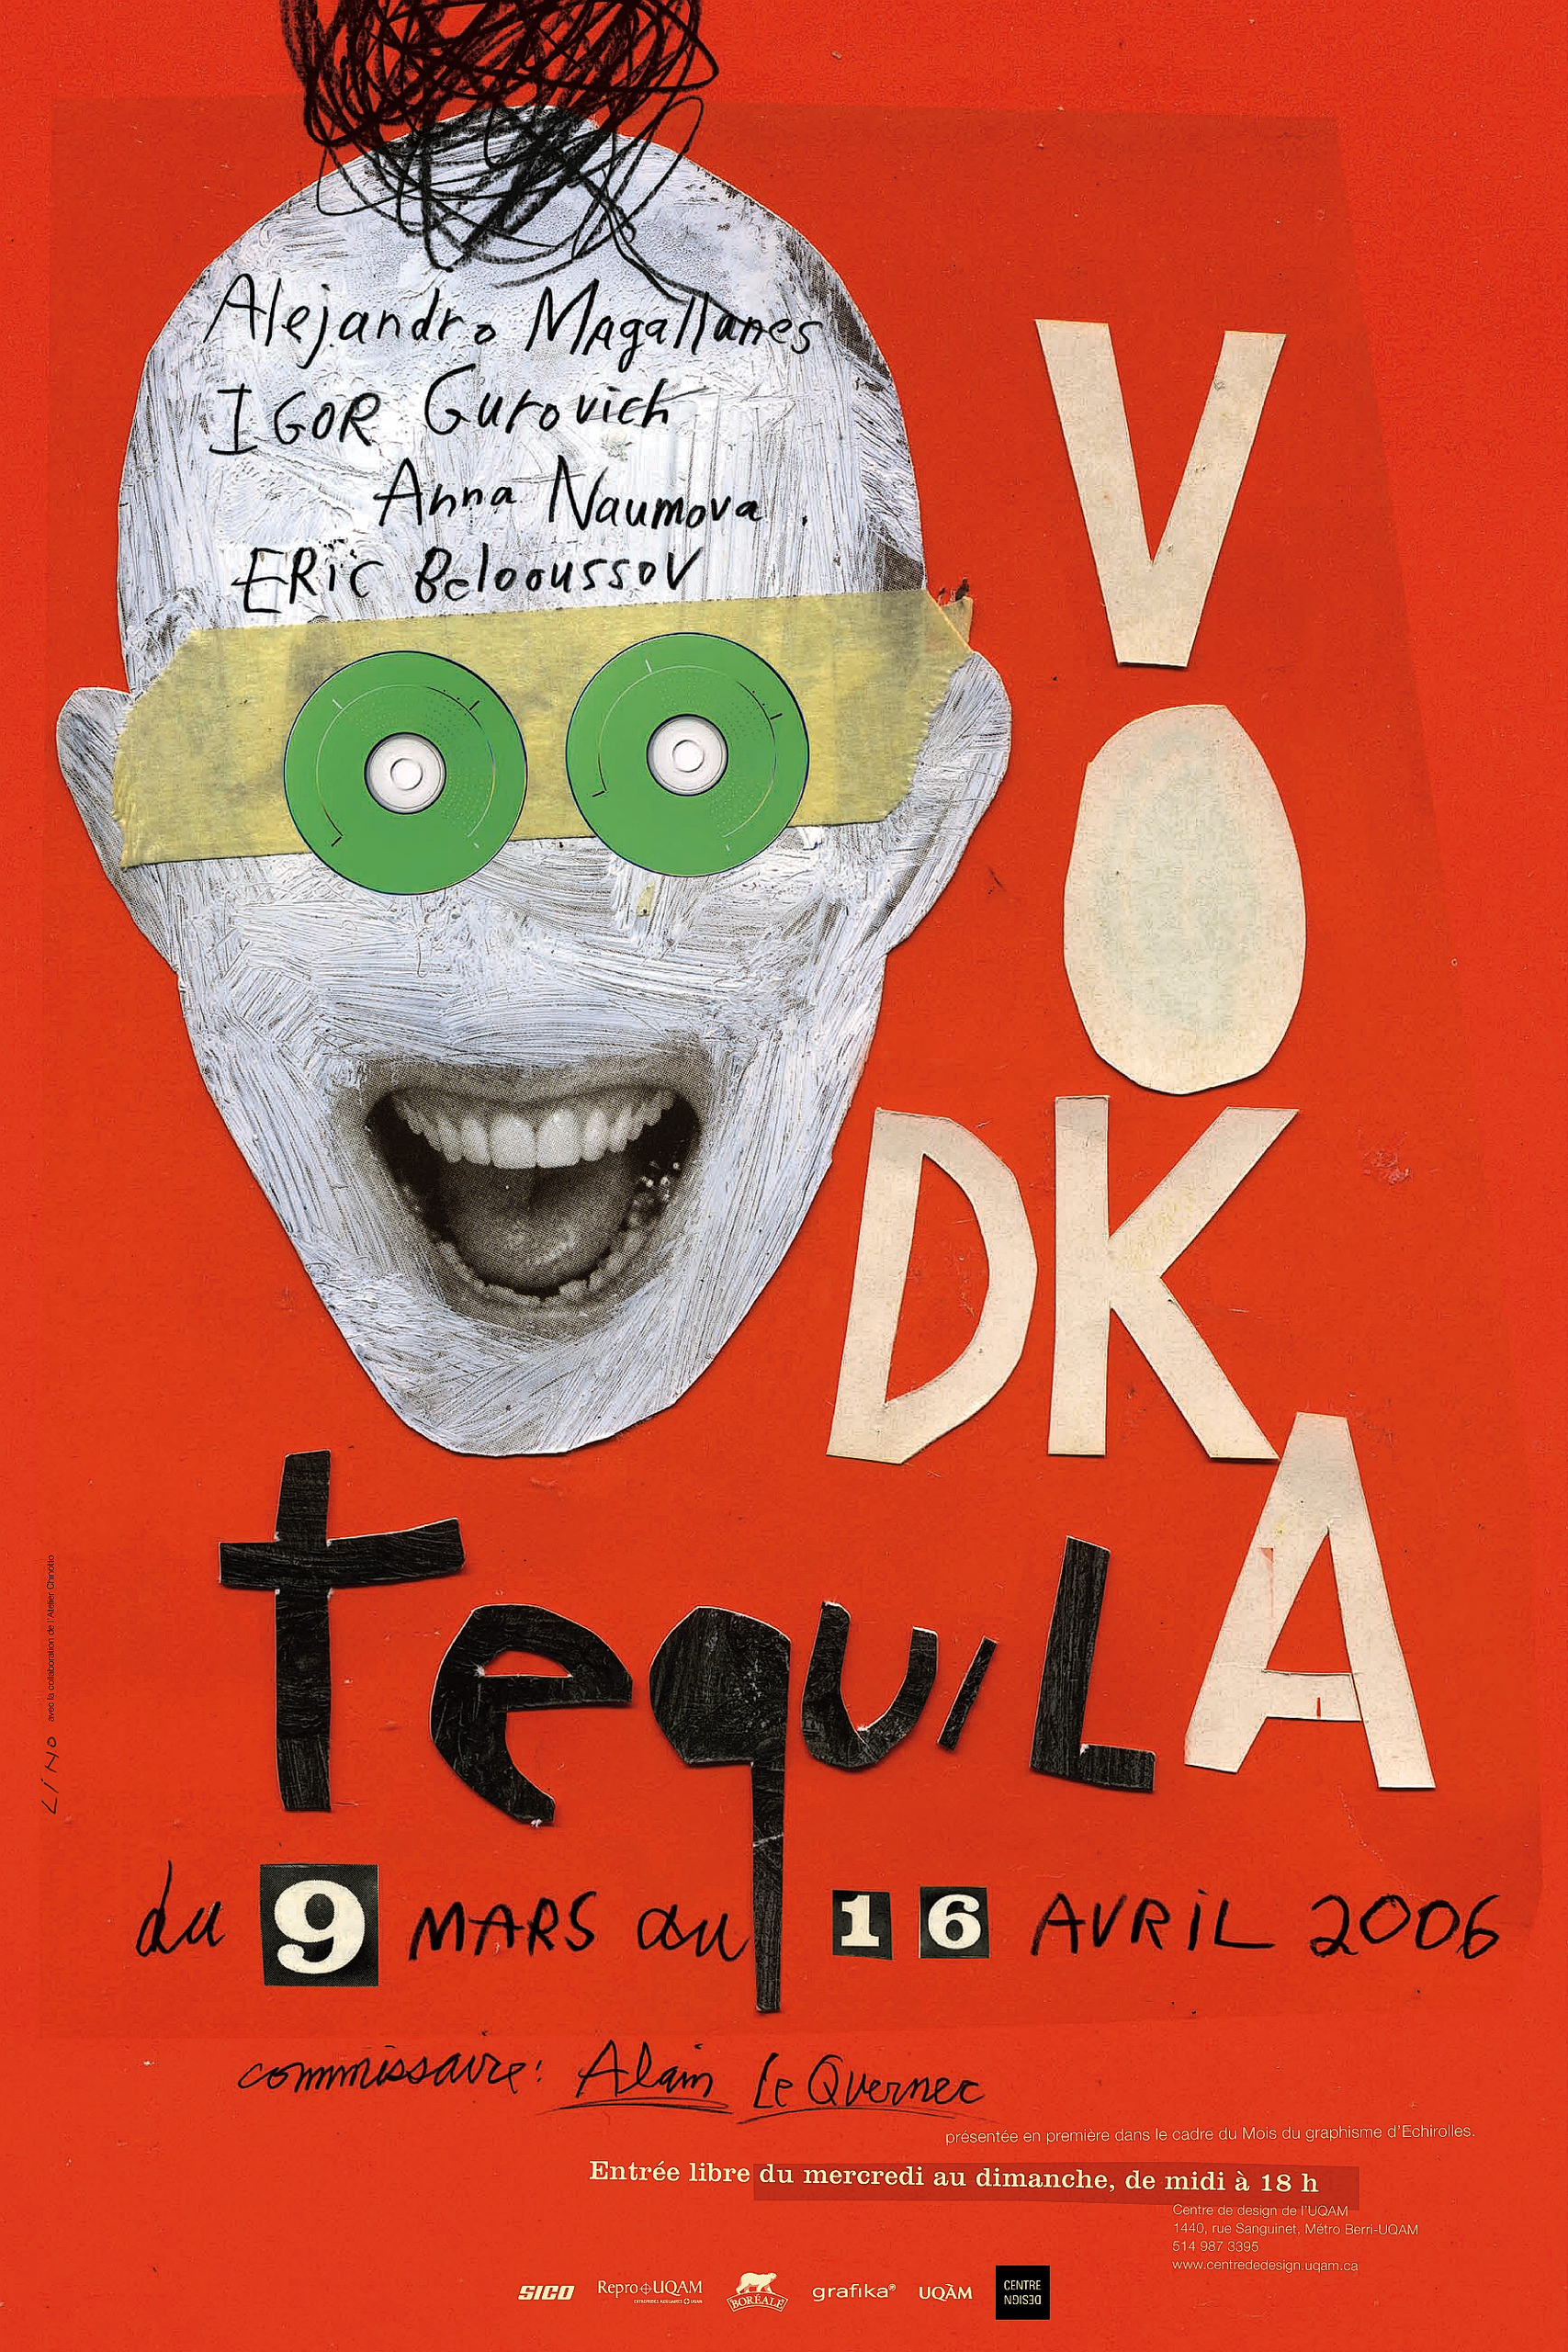 2006 - Exposition - Vodka Tequila ©Lino